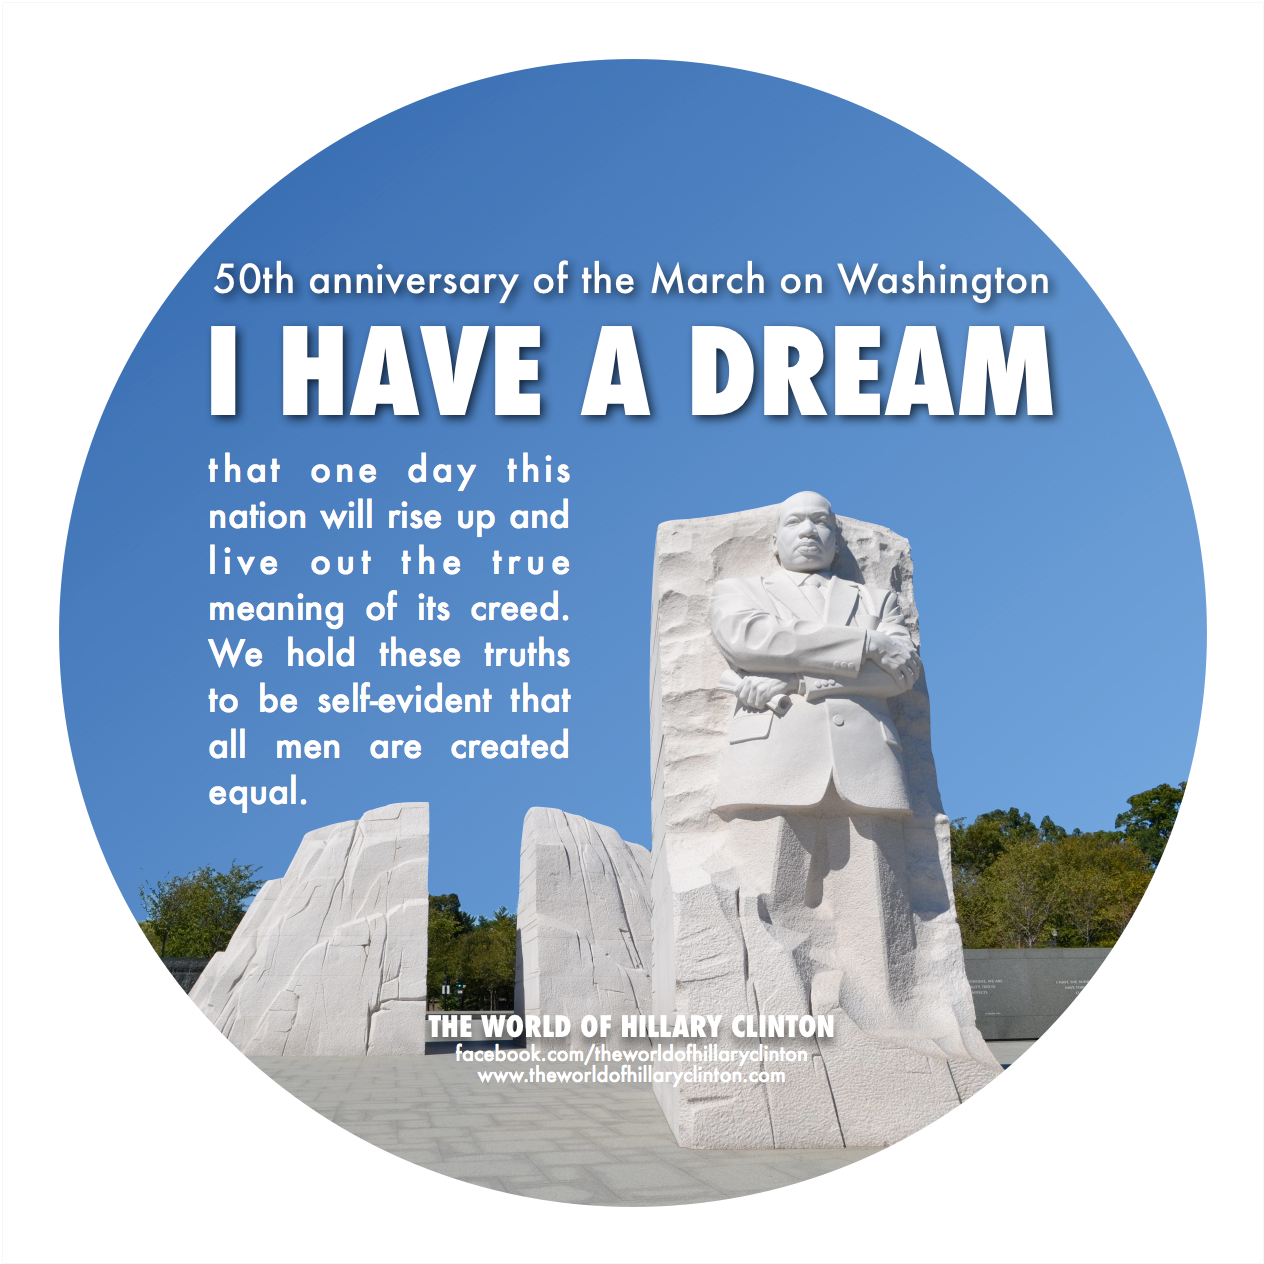 martin luther king i have a Martin luther king jr's 'i have a dream' speech is the most famous portion of the august 28, 1963, march on washington for jobs and freedom.